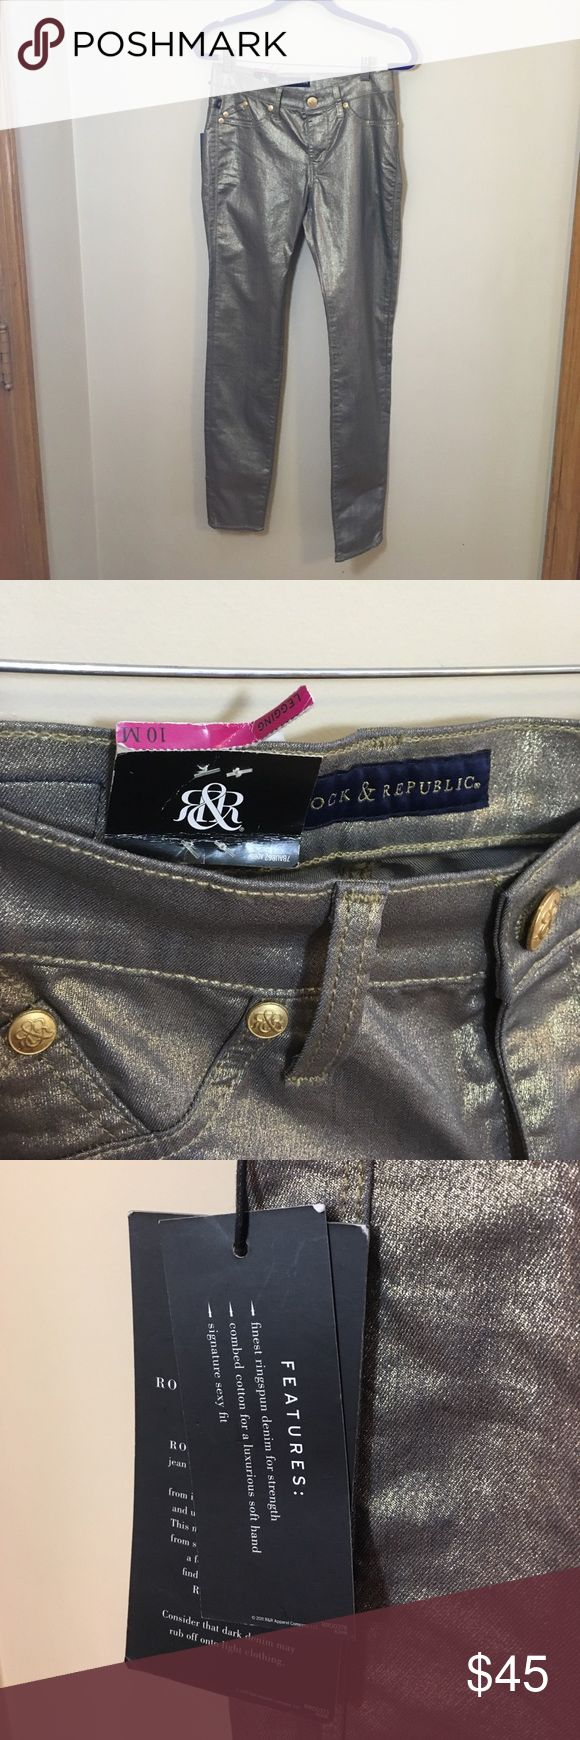 Rock & Republic Gold Jean Leggings NWT 10 New with tags, Rock & Republic Gold Jean leggings. Size 10 M. Waist: 31. Rise: 9.5. Inseam: 31. 73% cotton, 2% spandex, 25% polyester. Rock & Republic Jeans Skinny